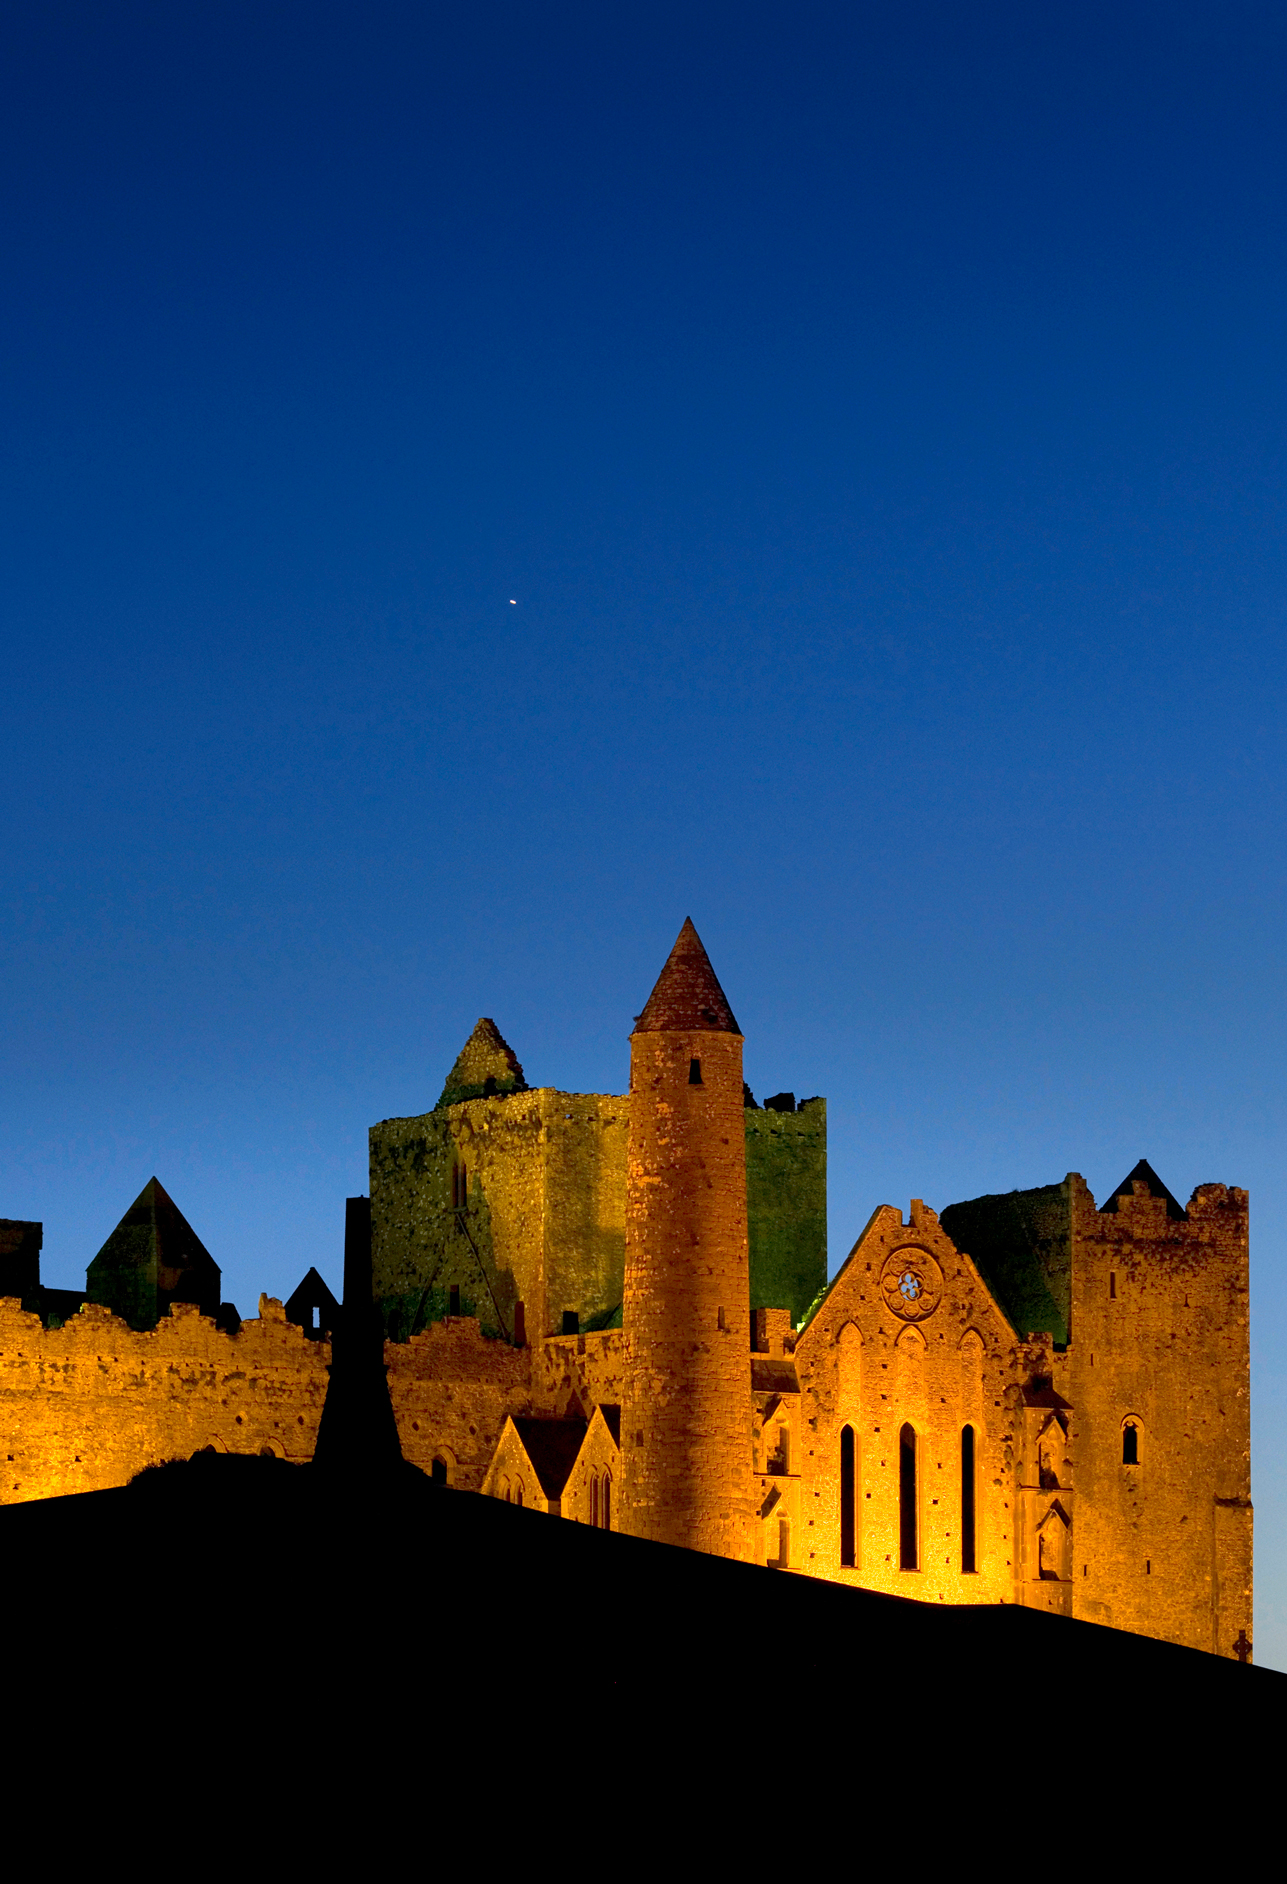 The Rock of Cashel at dusk illuminated by flood lights